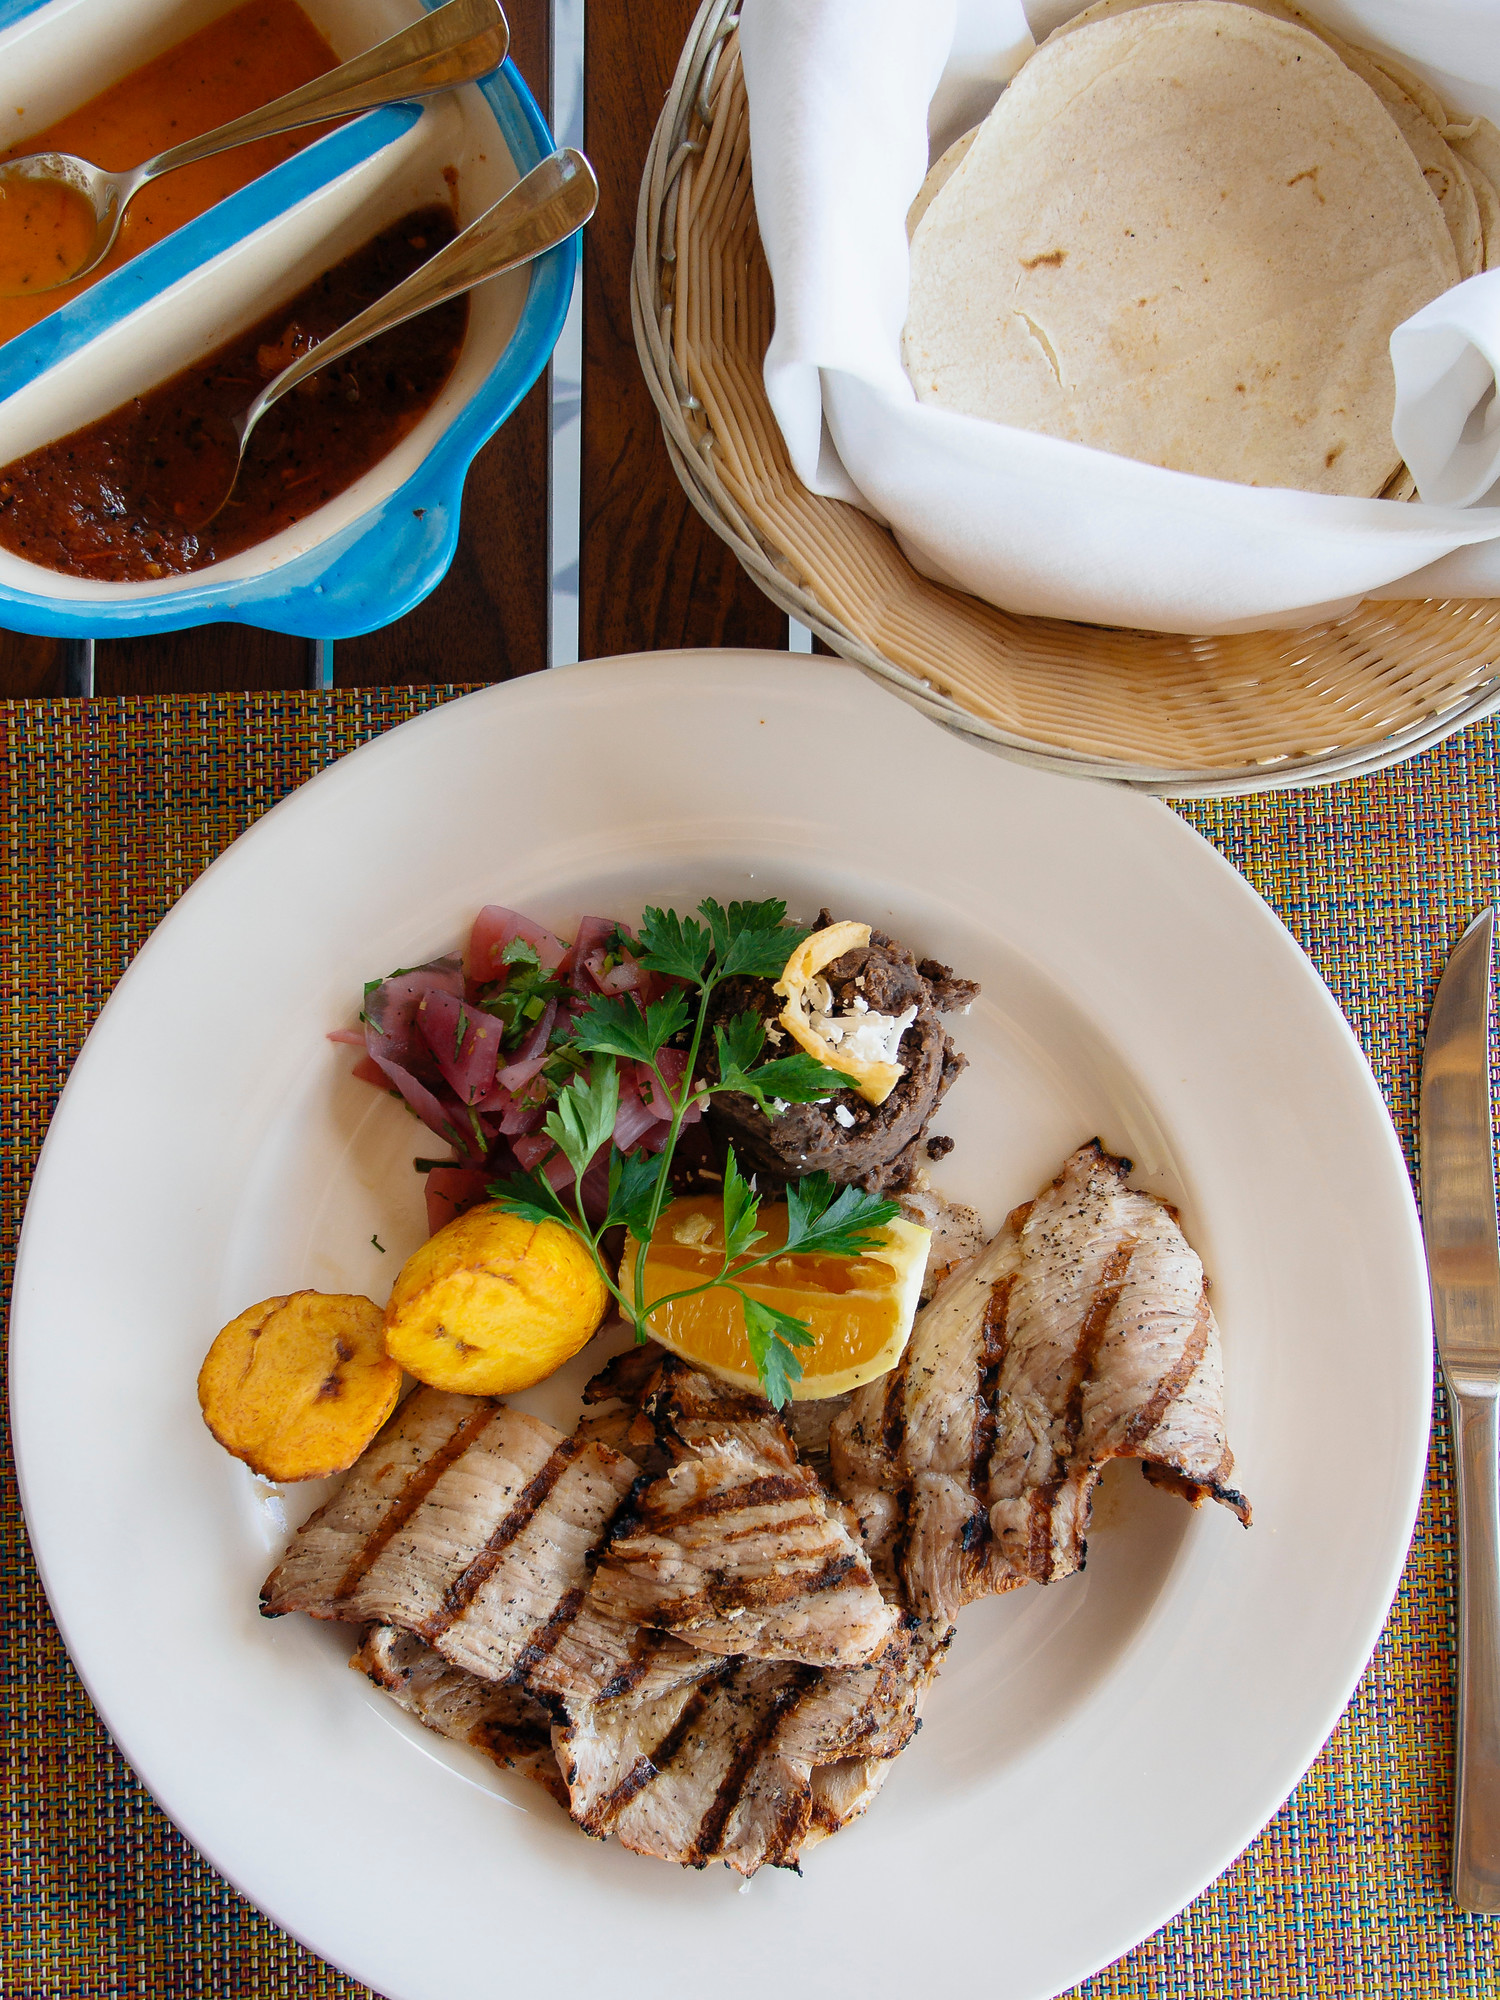 Poc chuc in Mexico is Mayan grilled pork that is marinated in sour orange juice and served with pickled onions.